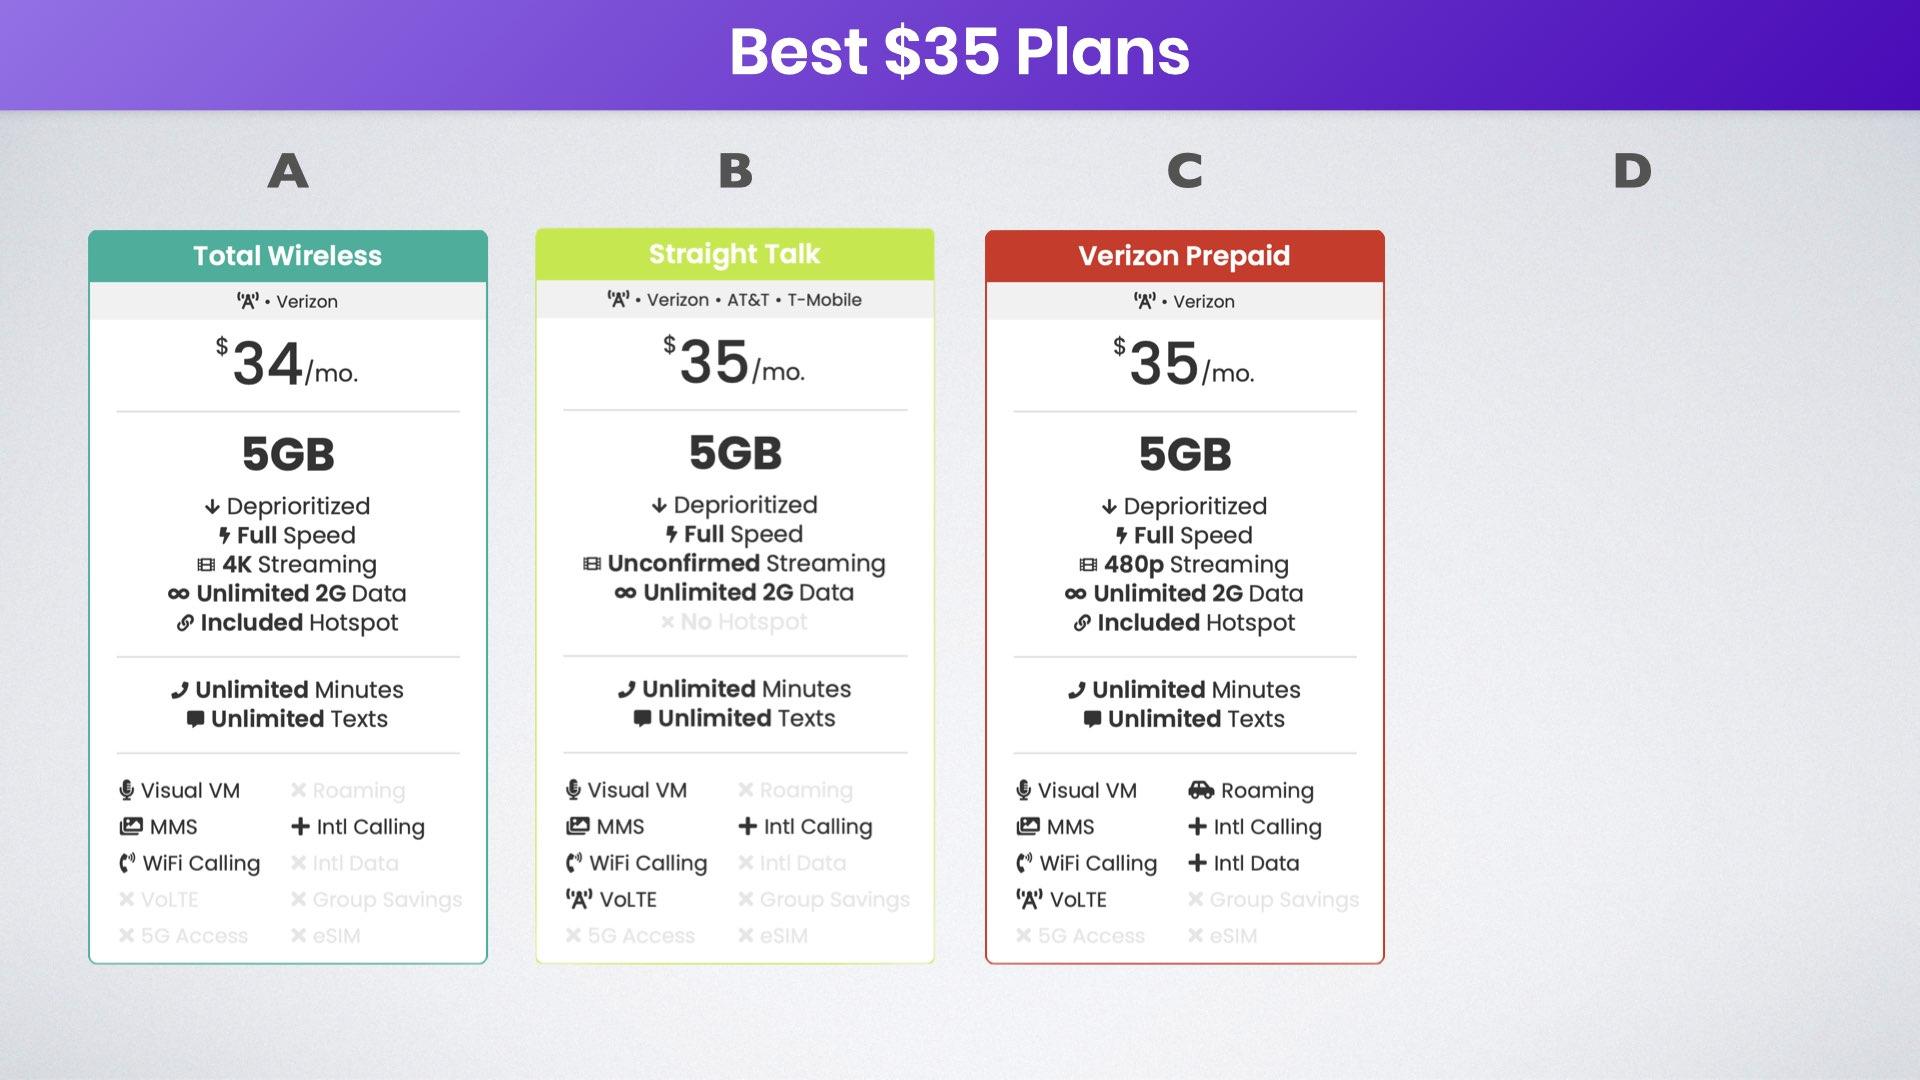 verizon thirty-five dollar plans